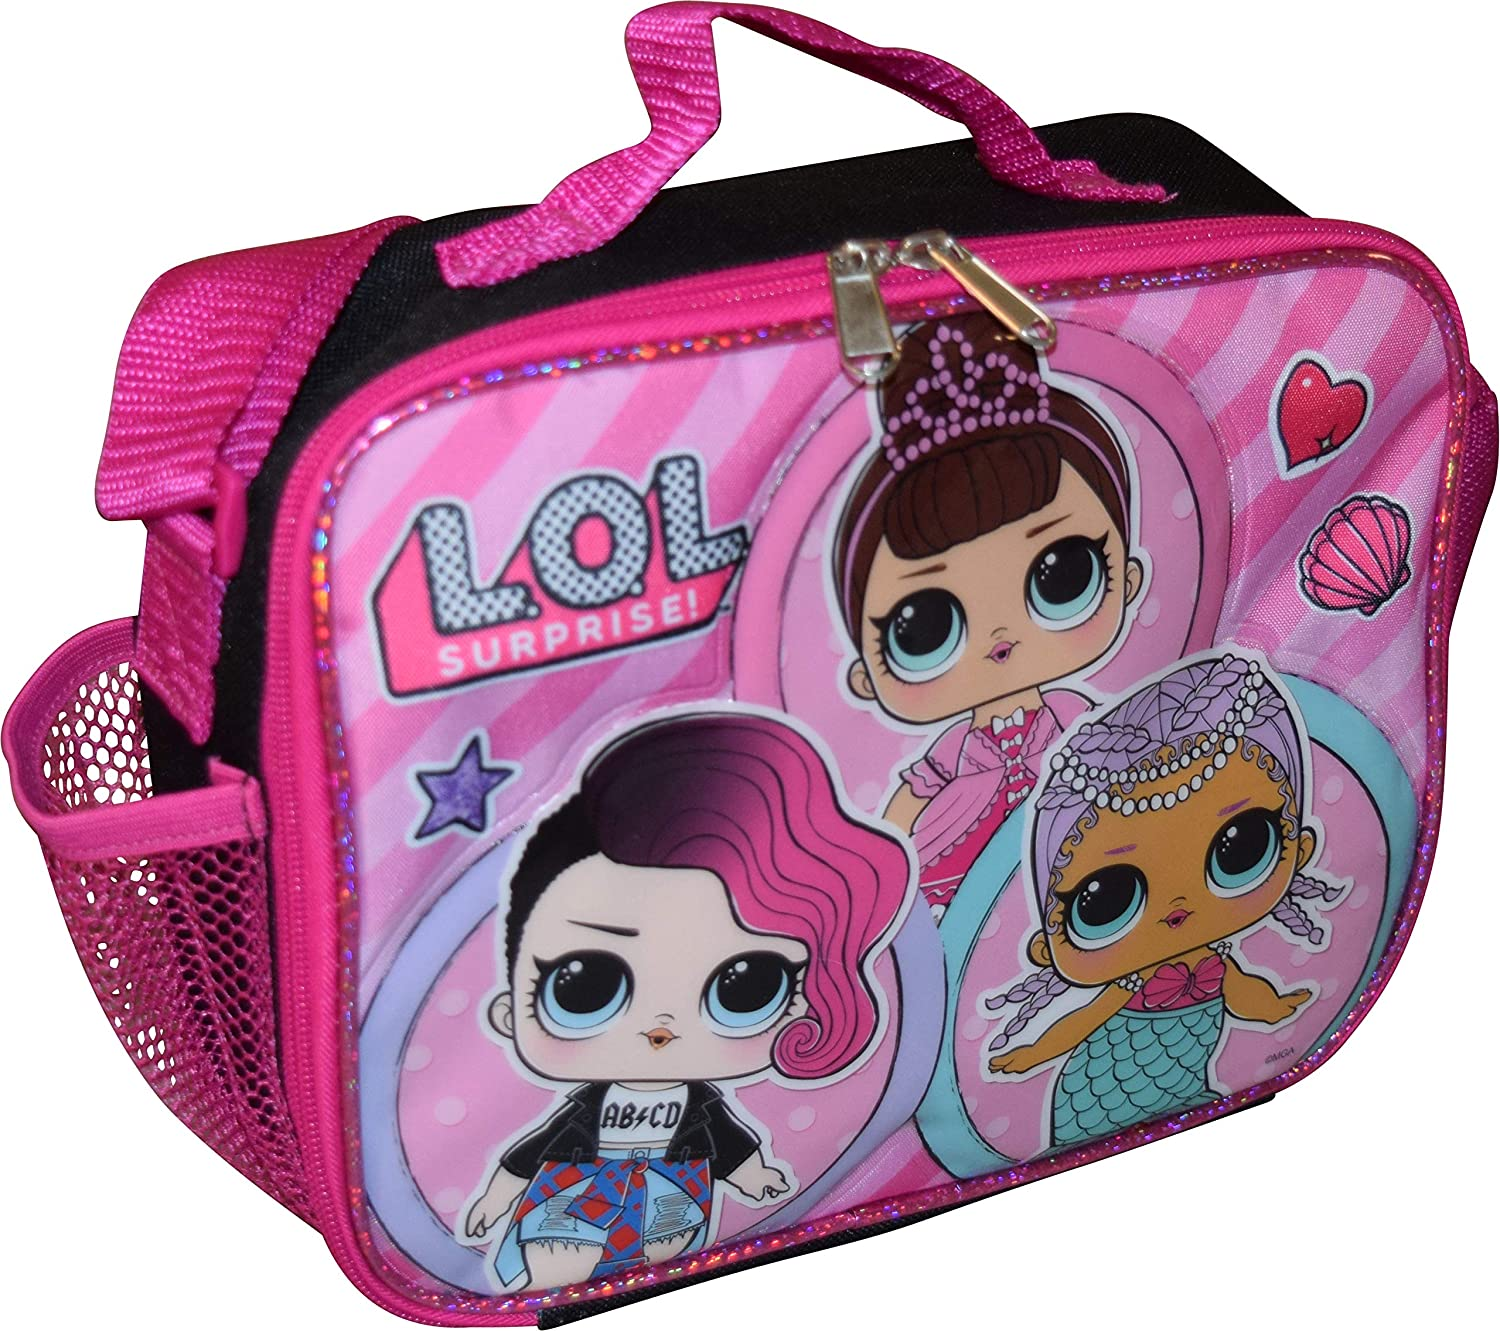 L.O.L Surprise!! Girl's Deluxe Embossed Insulated Lunch Box With Shoulder Strap Group Ruz